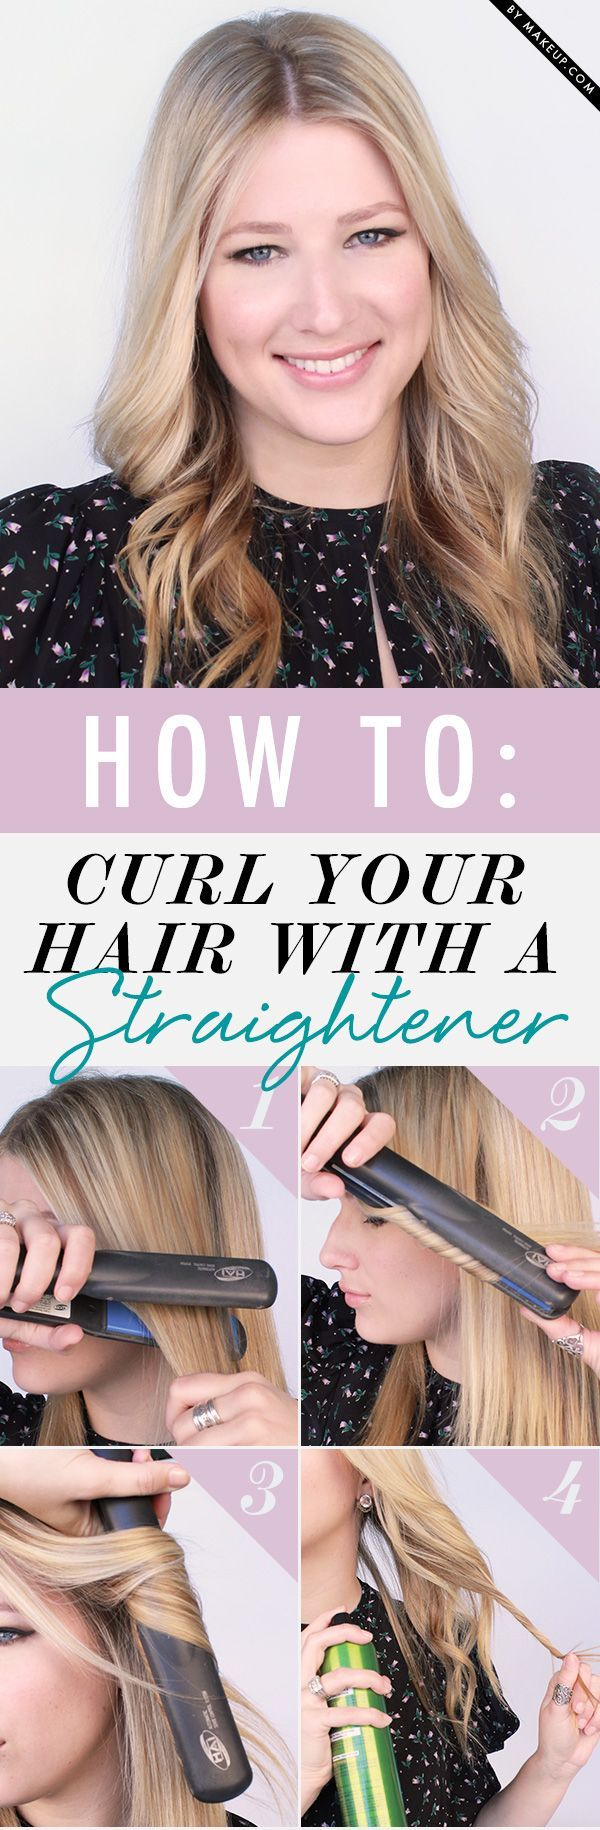 **Hair hacks - Trucos para el pelo: How to curl your hair with a straightener. Cómo rizarle el pelo con una plancha.